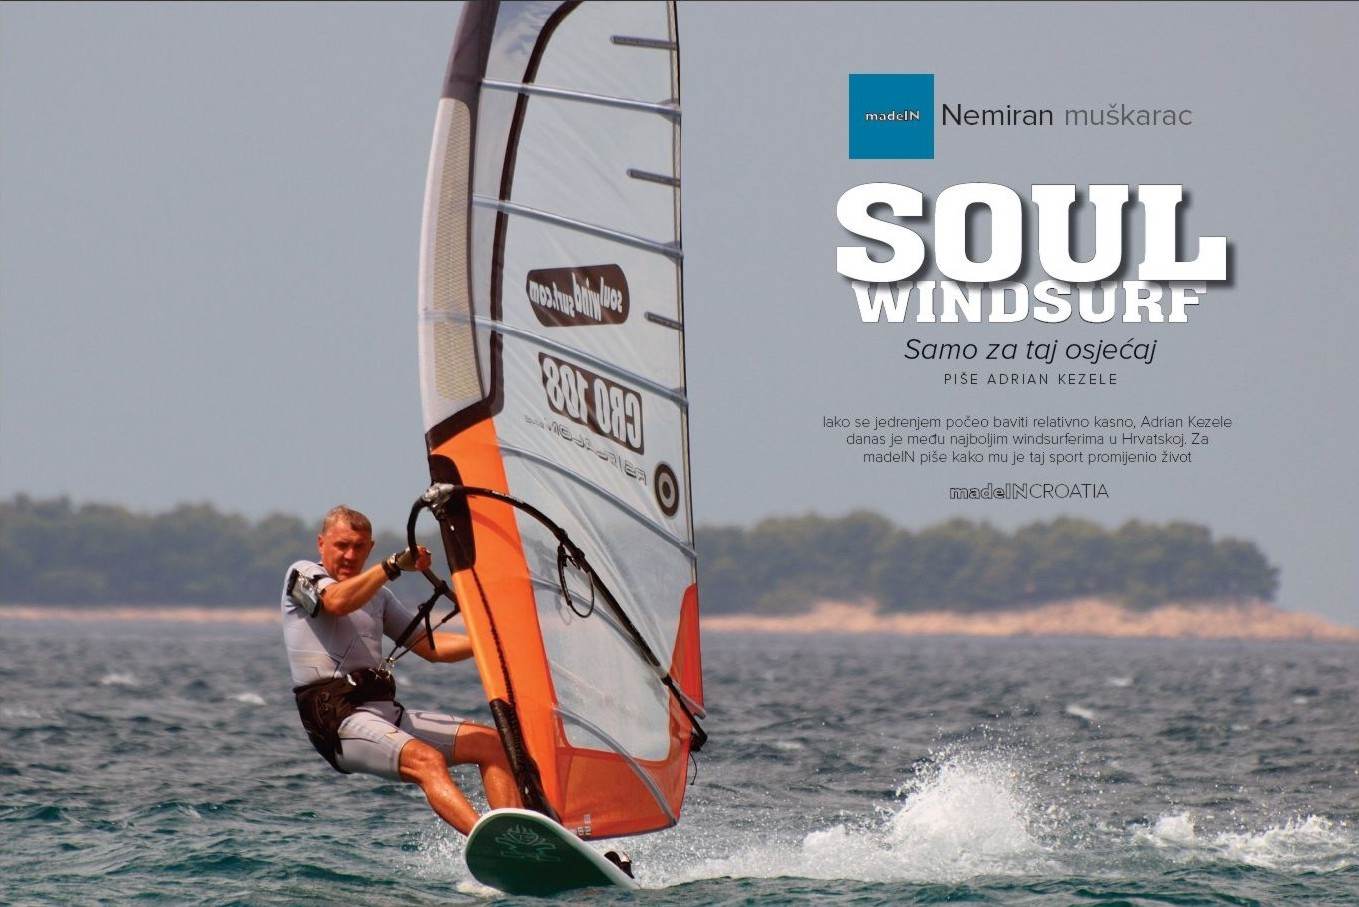 Soulwindsurf : Windsurfing the Soul